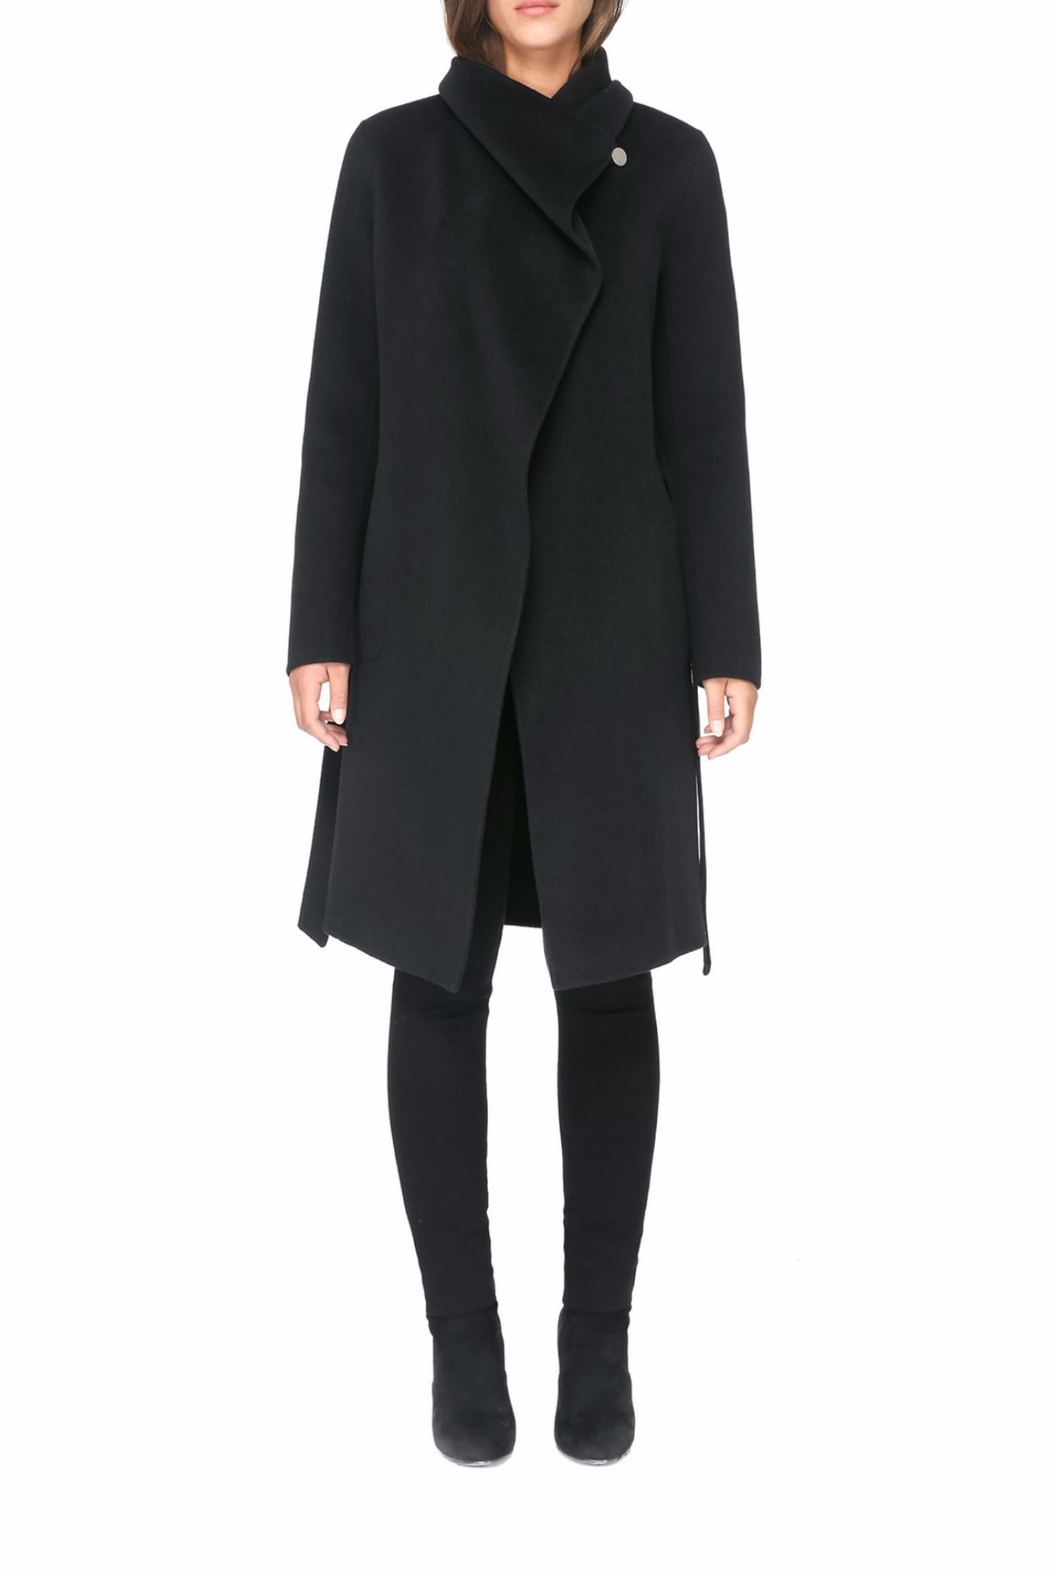 Soia & Kyo Oxana Wool Coat - Side Cropped Image